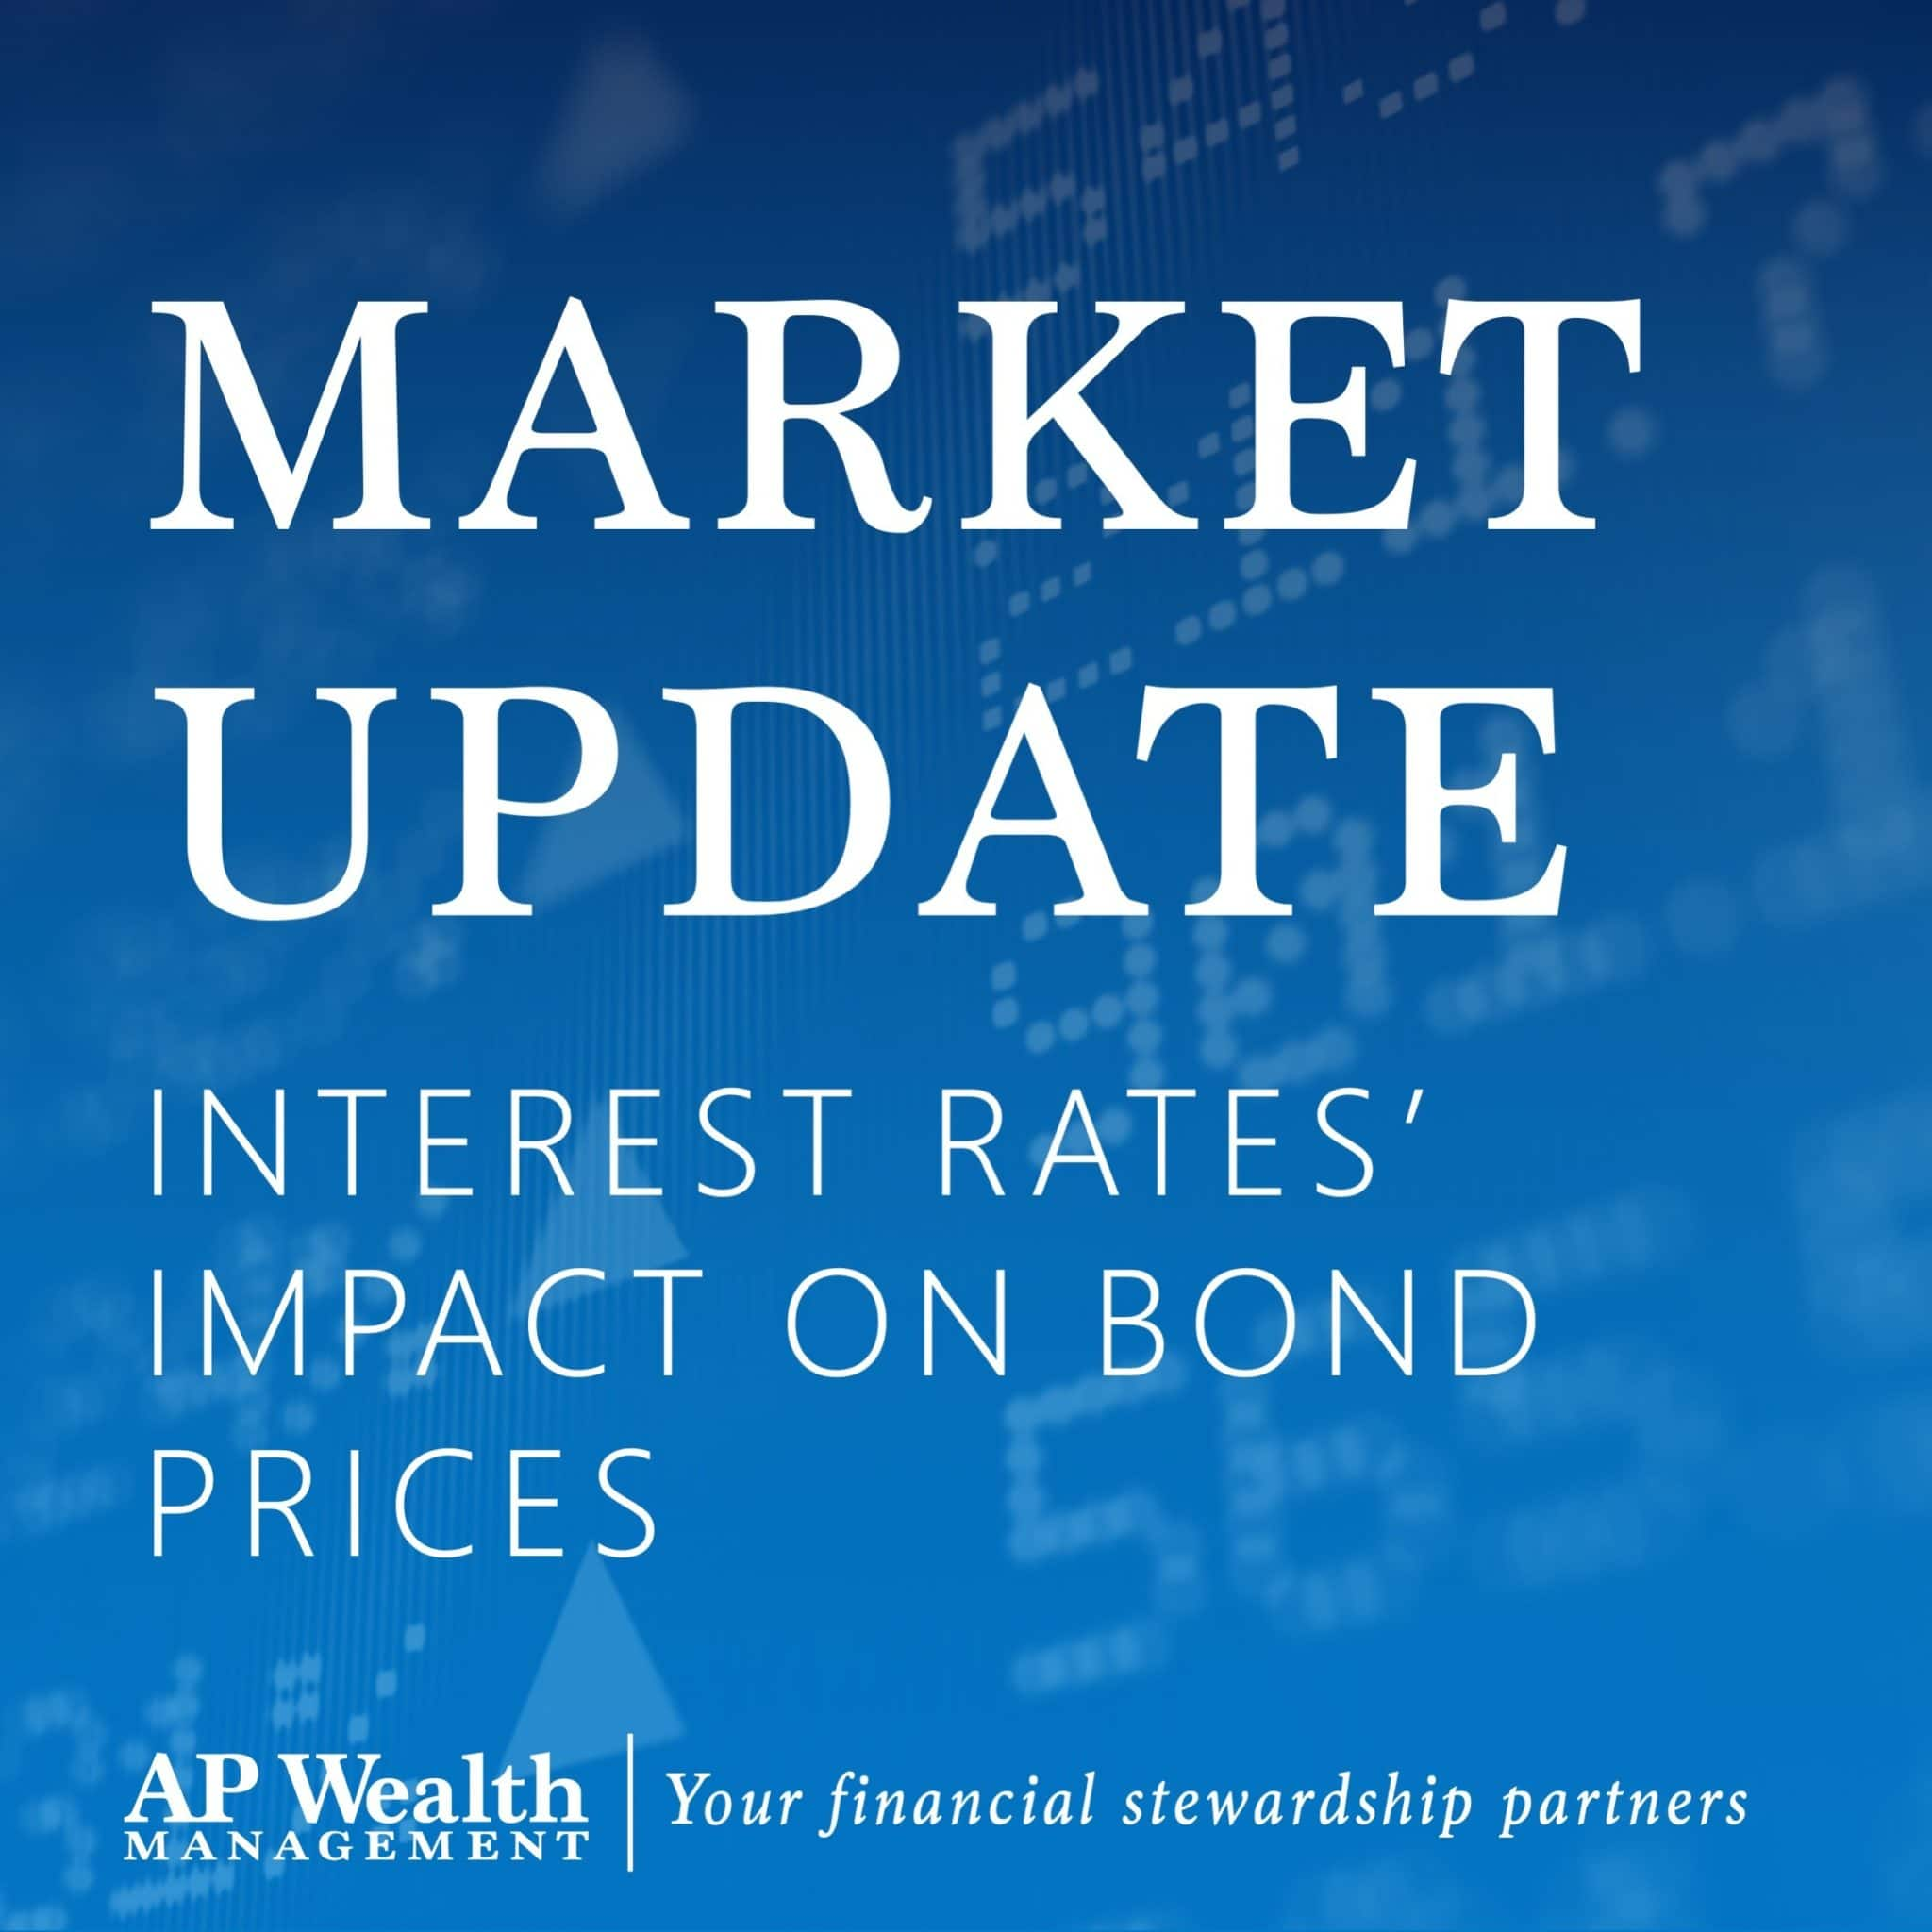 Interest Rates Impact on Bond Prices